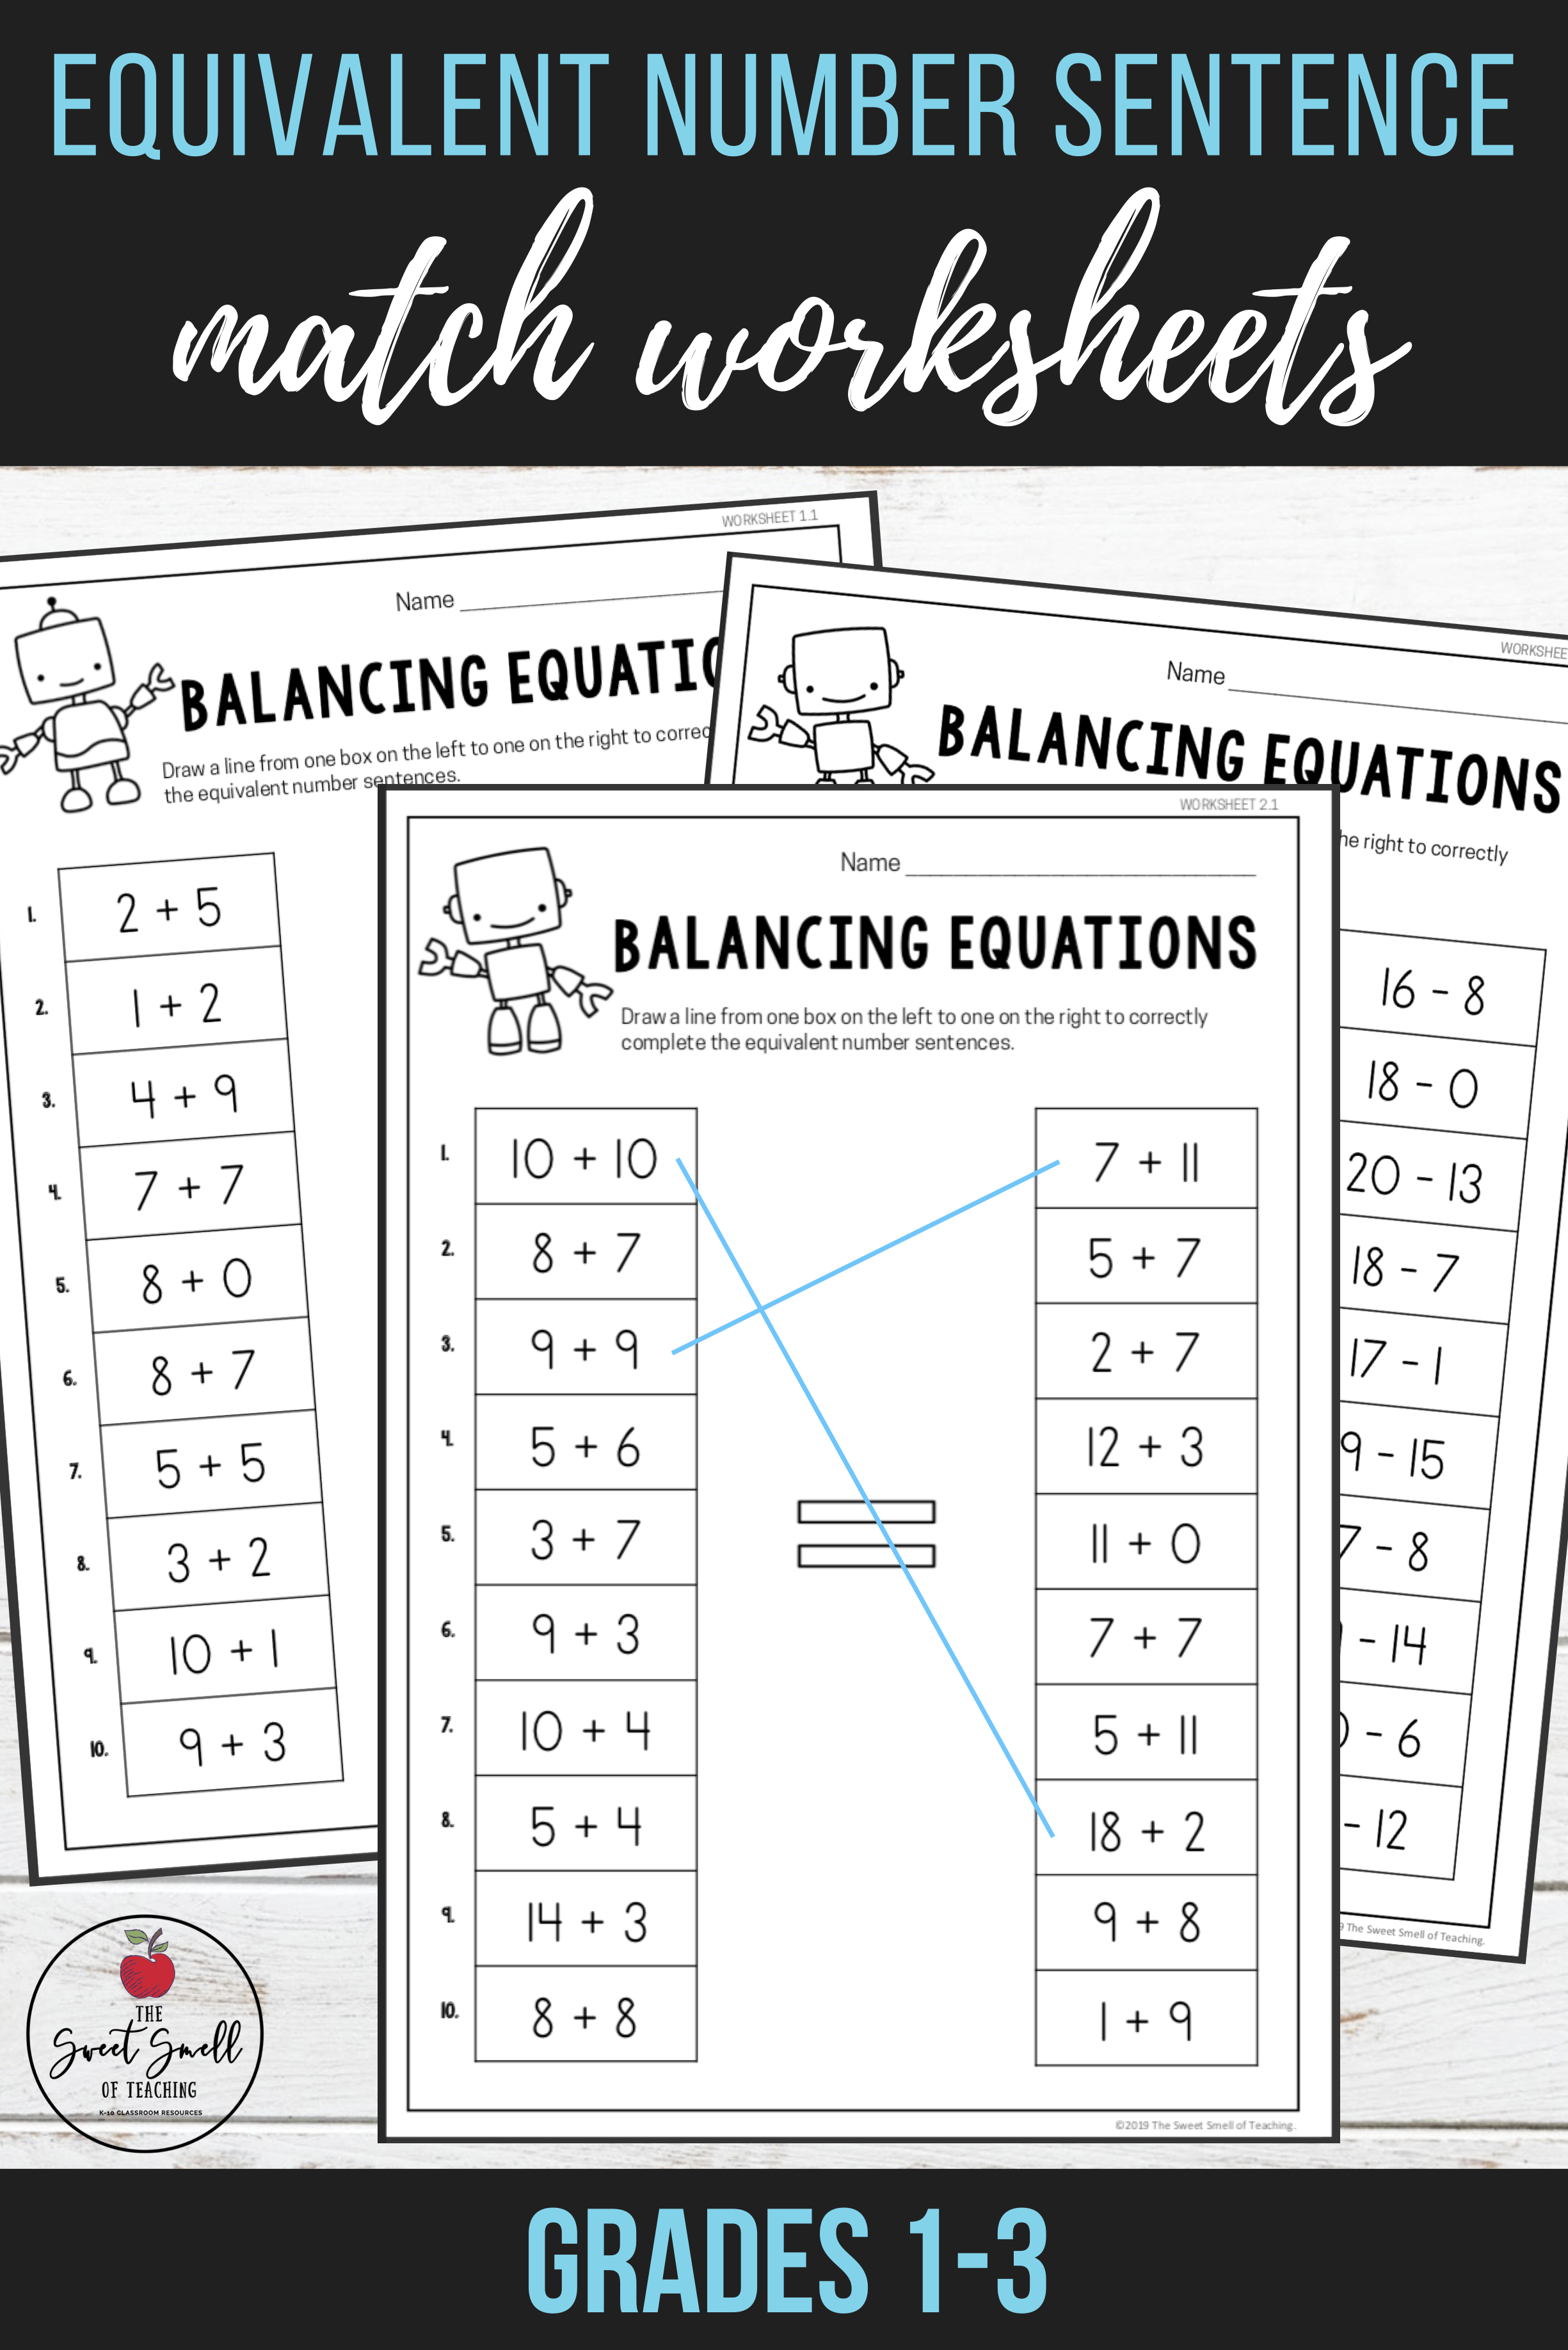 Balancing Equations Challenge Worksheet Answer Key